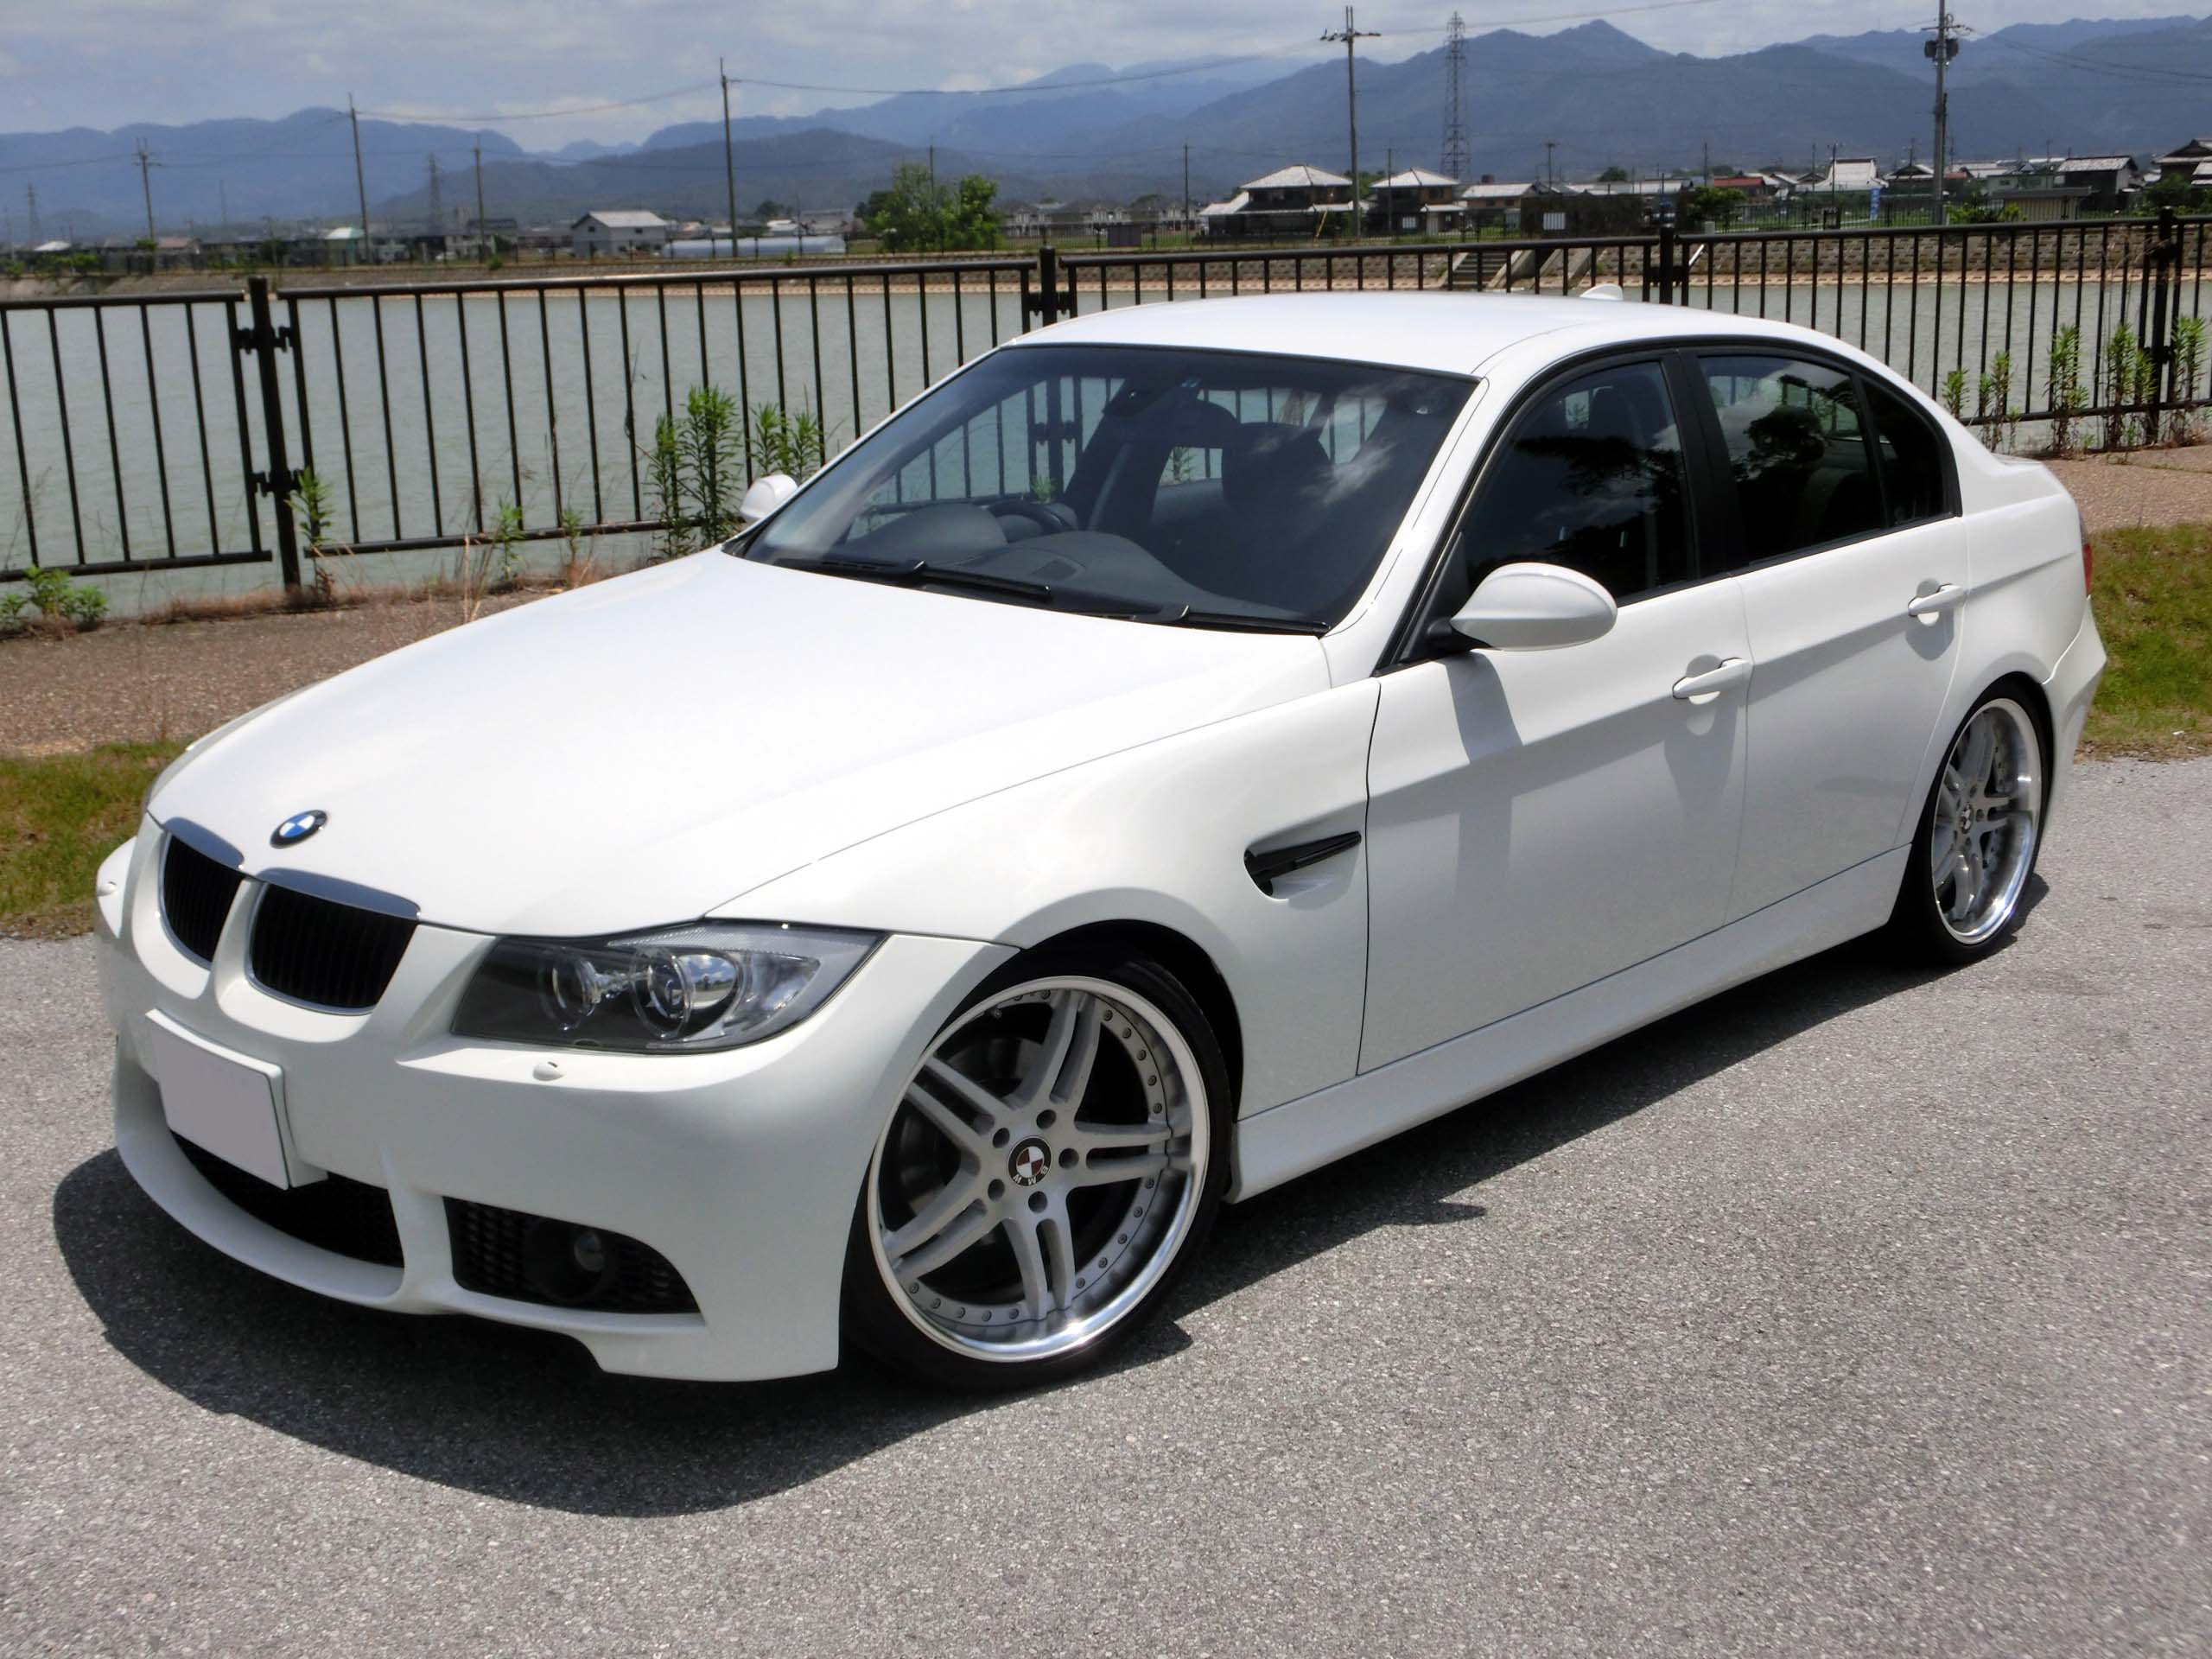 Bmw X6 Diesel Bmw X6 2015 Review Carsguide 2019 Audi A6 Revealed The Key Less To New Luxury